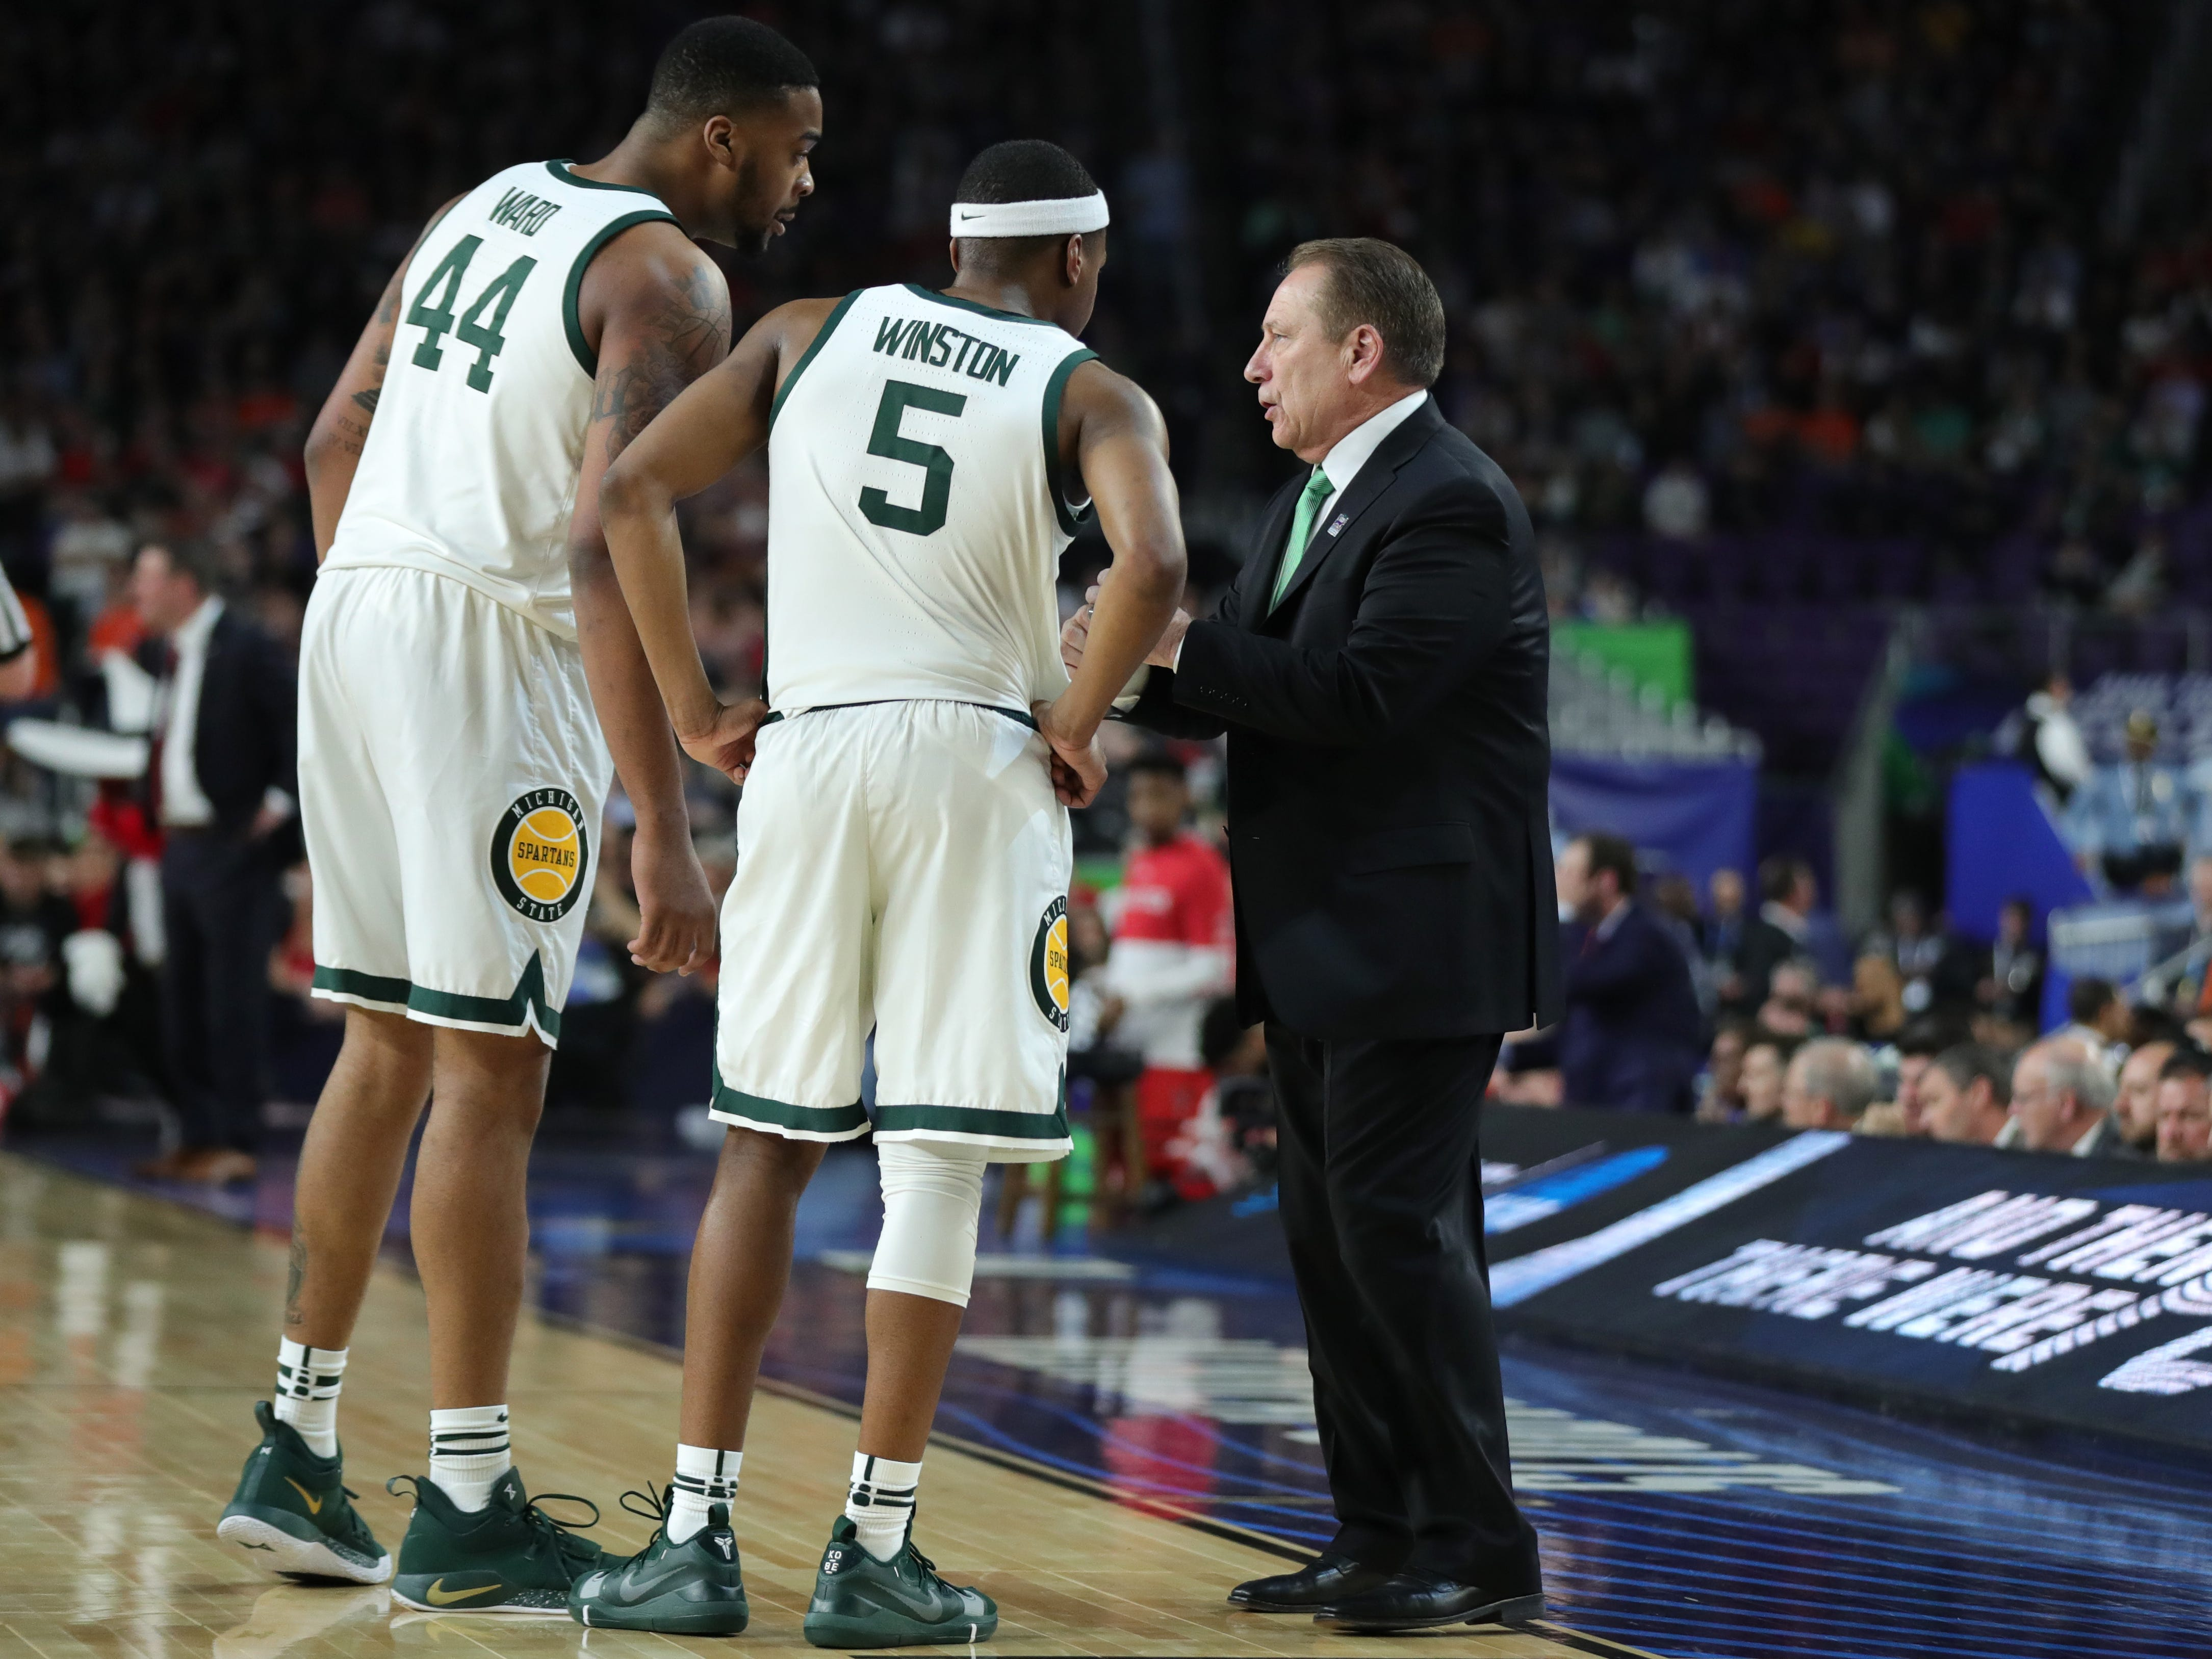 Michigan State head coach Tom Izzo speaks with Nick Ward and Cassius Winston during the first half of the Final Four game against Texas Tech at U.S. Bank Stadium in Minneapolis, Minnesota on Saturday, April 06, 2019.